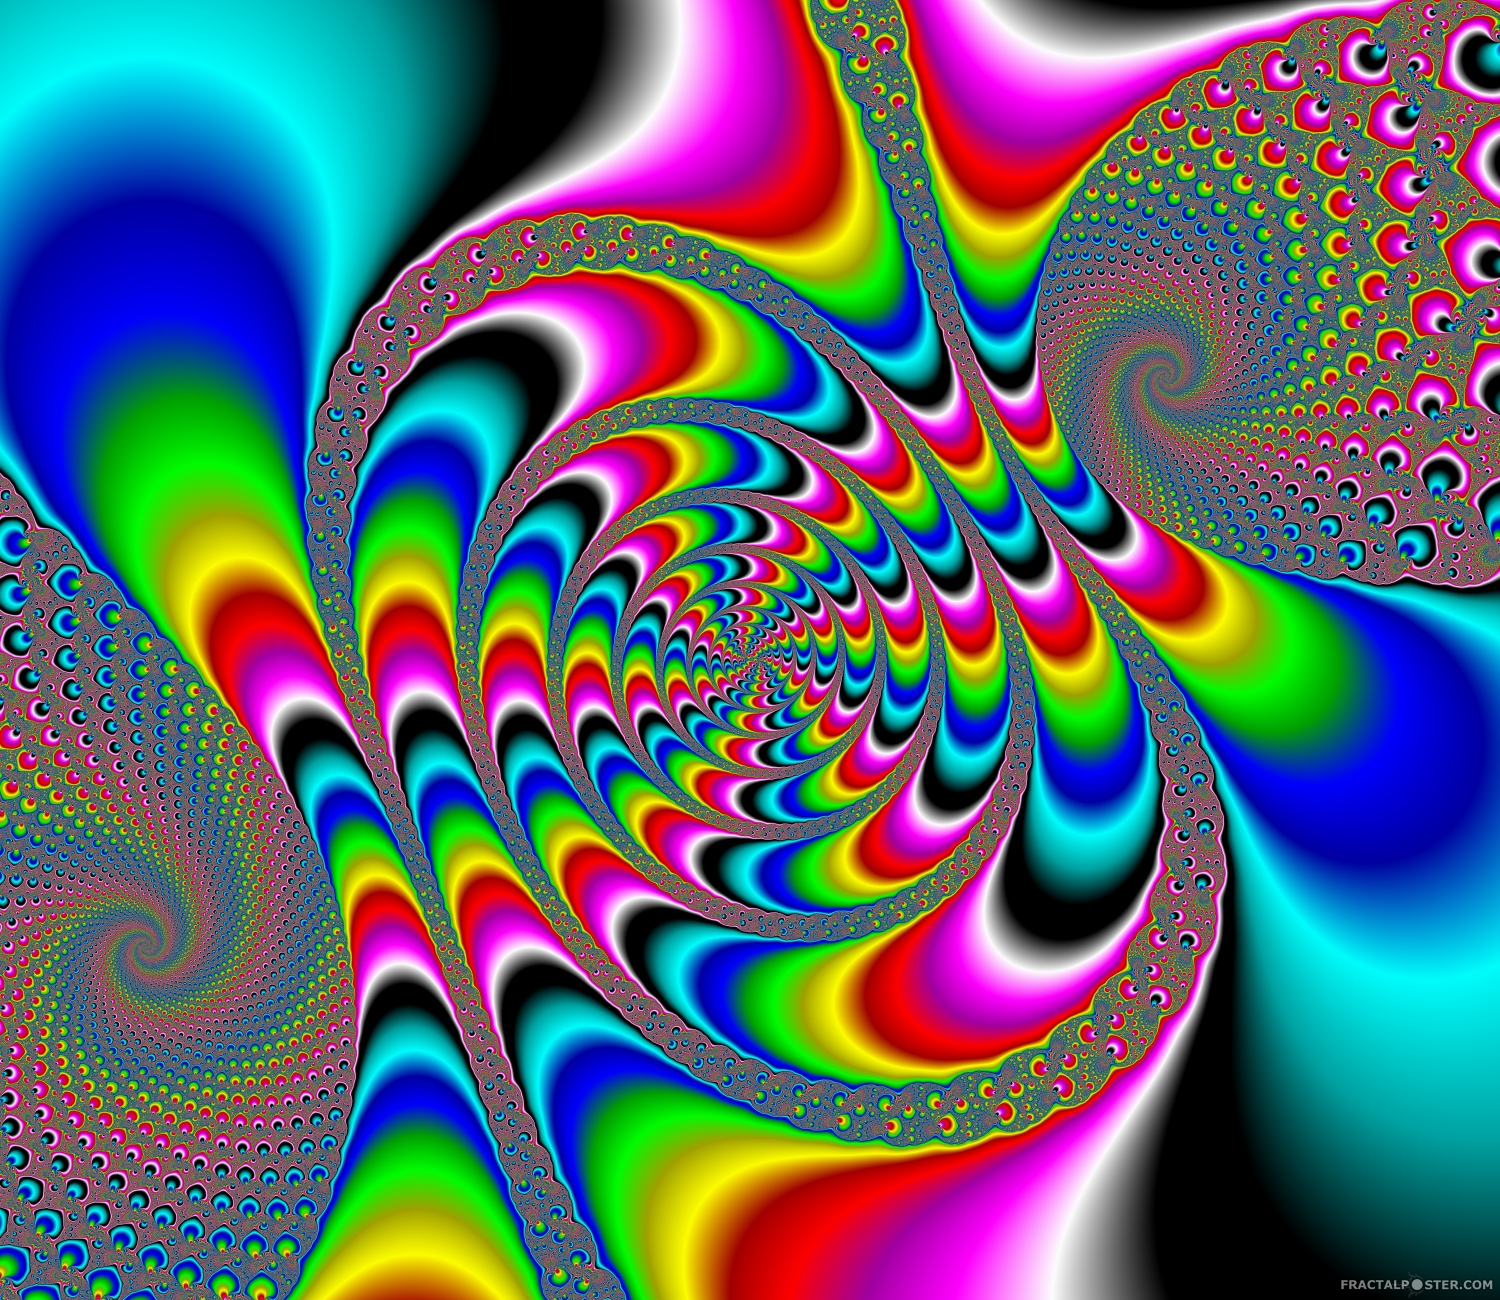 Rainbow 3d Wallpaper Quot Rainbow Fun 1 Quot Fractal Image By Orbulon Hd Wallpapers